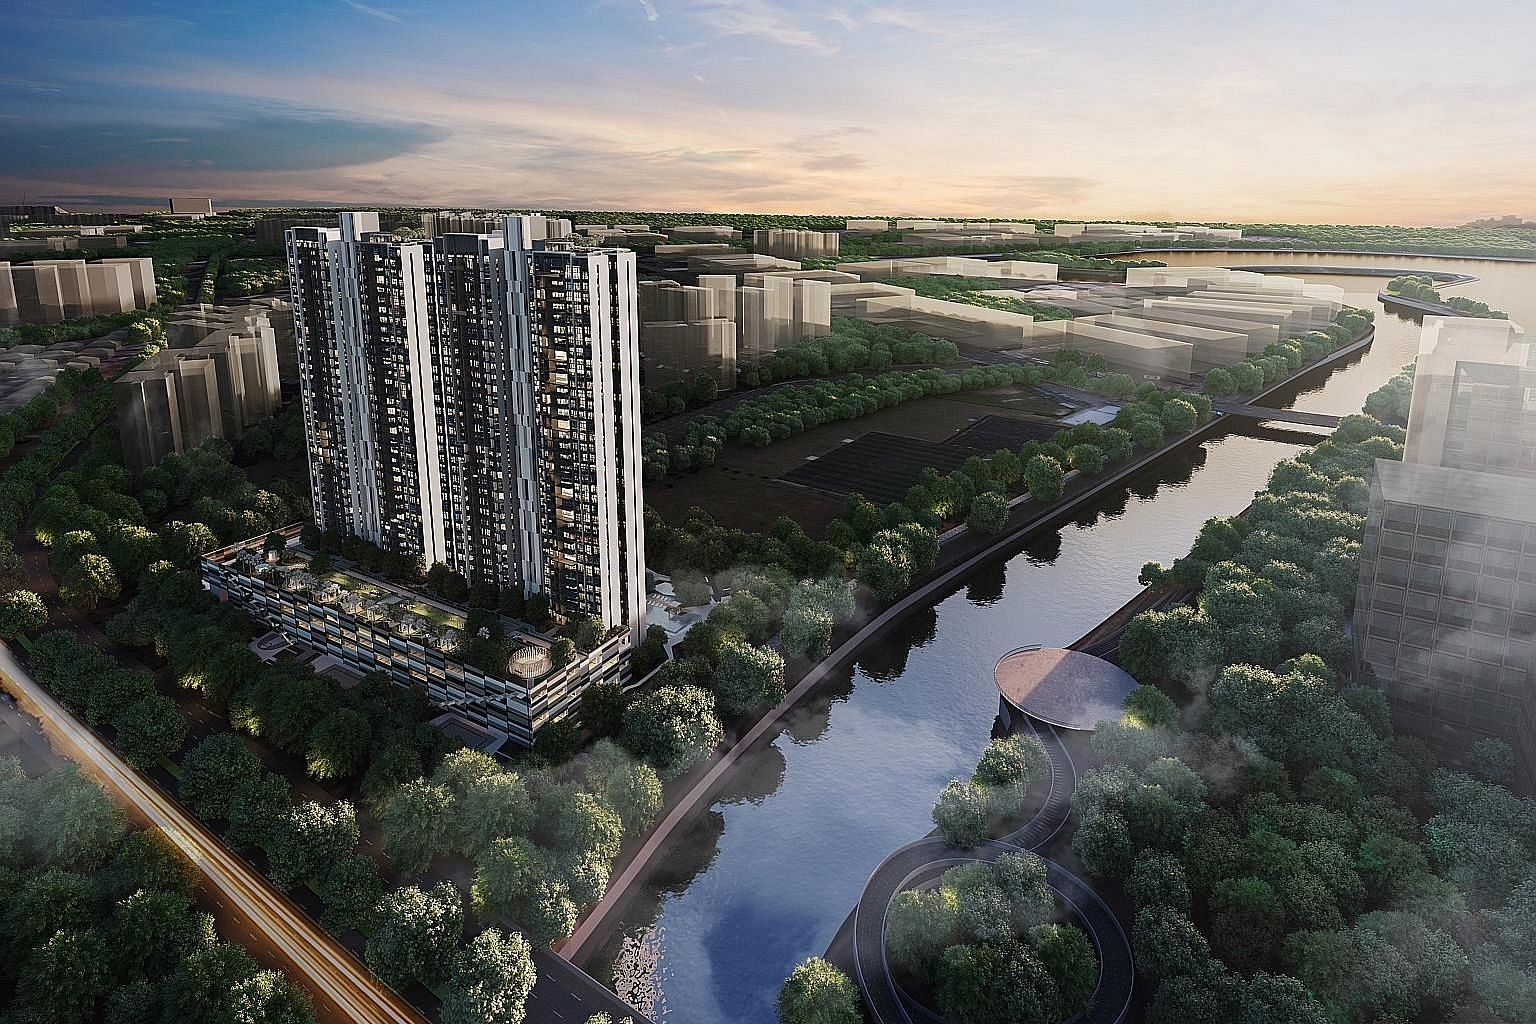 Artist's impression of Parc Riviera in West Coast Vale. The condo was the top-selling private residential project last month. It saw 83 units sold at a median price of $1,246 psf.